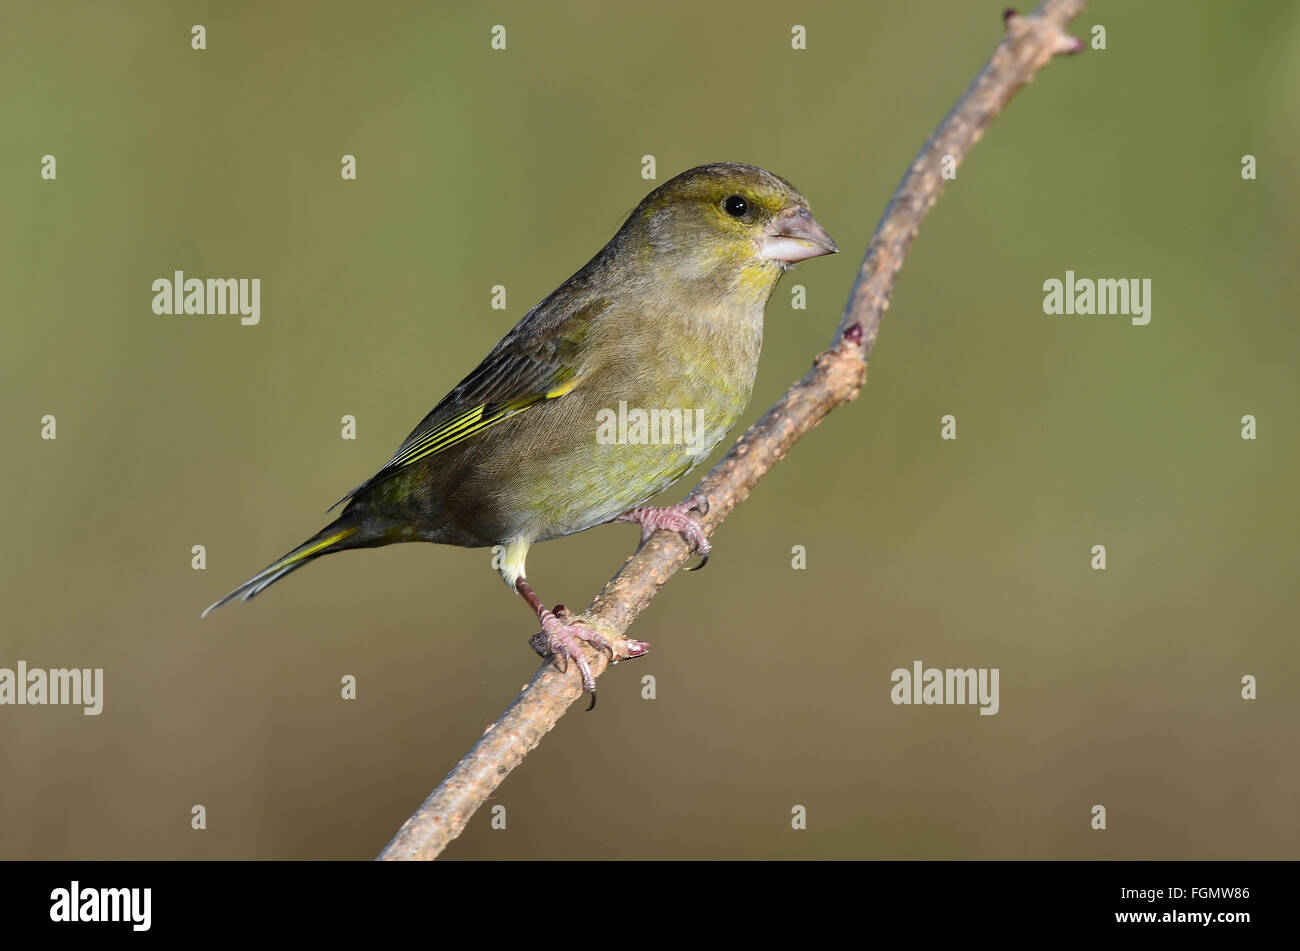 A greenfinch on a twig UK - Stock Image